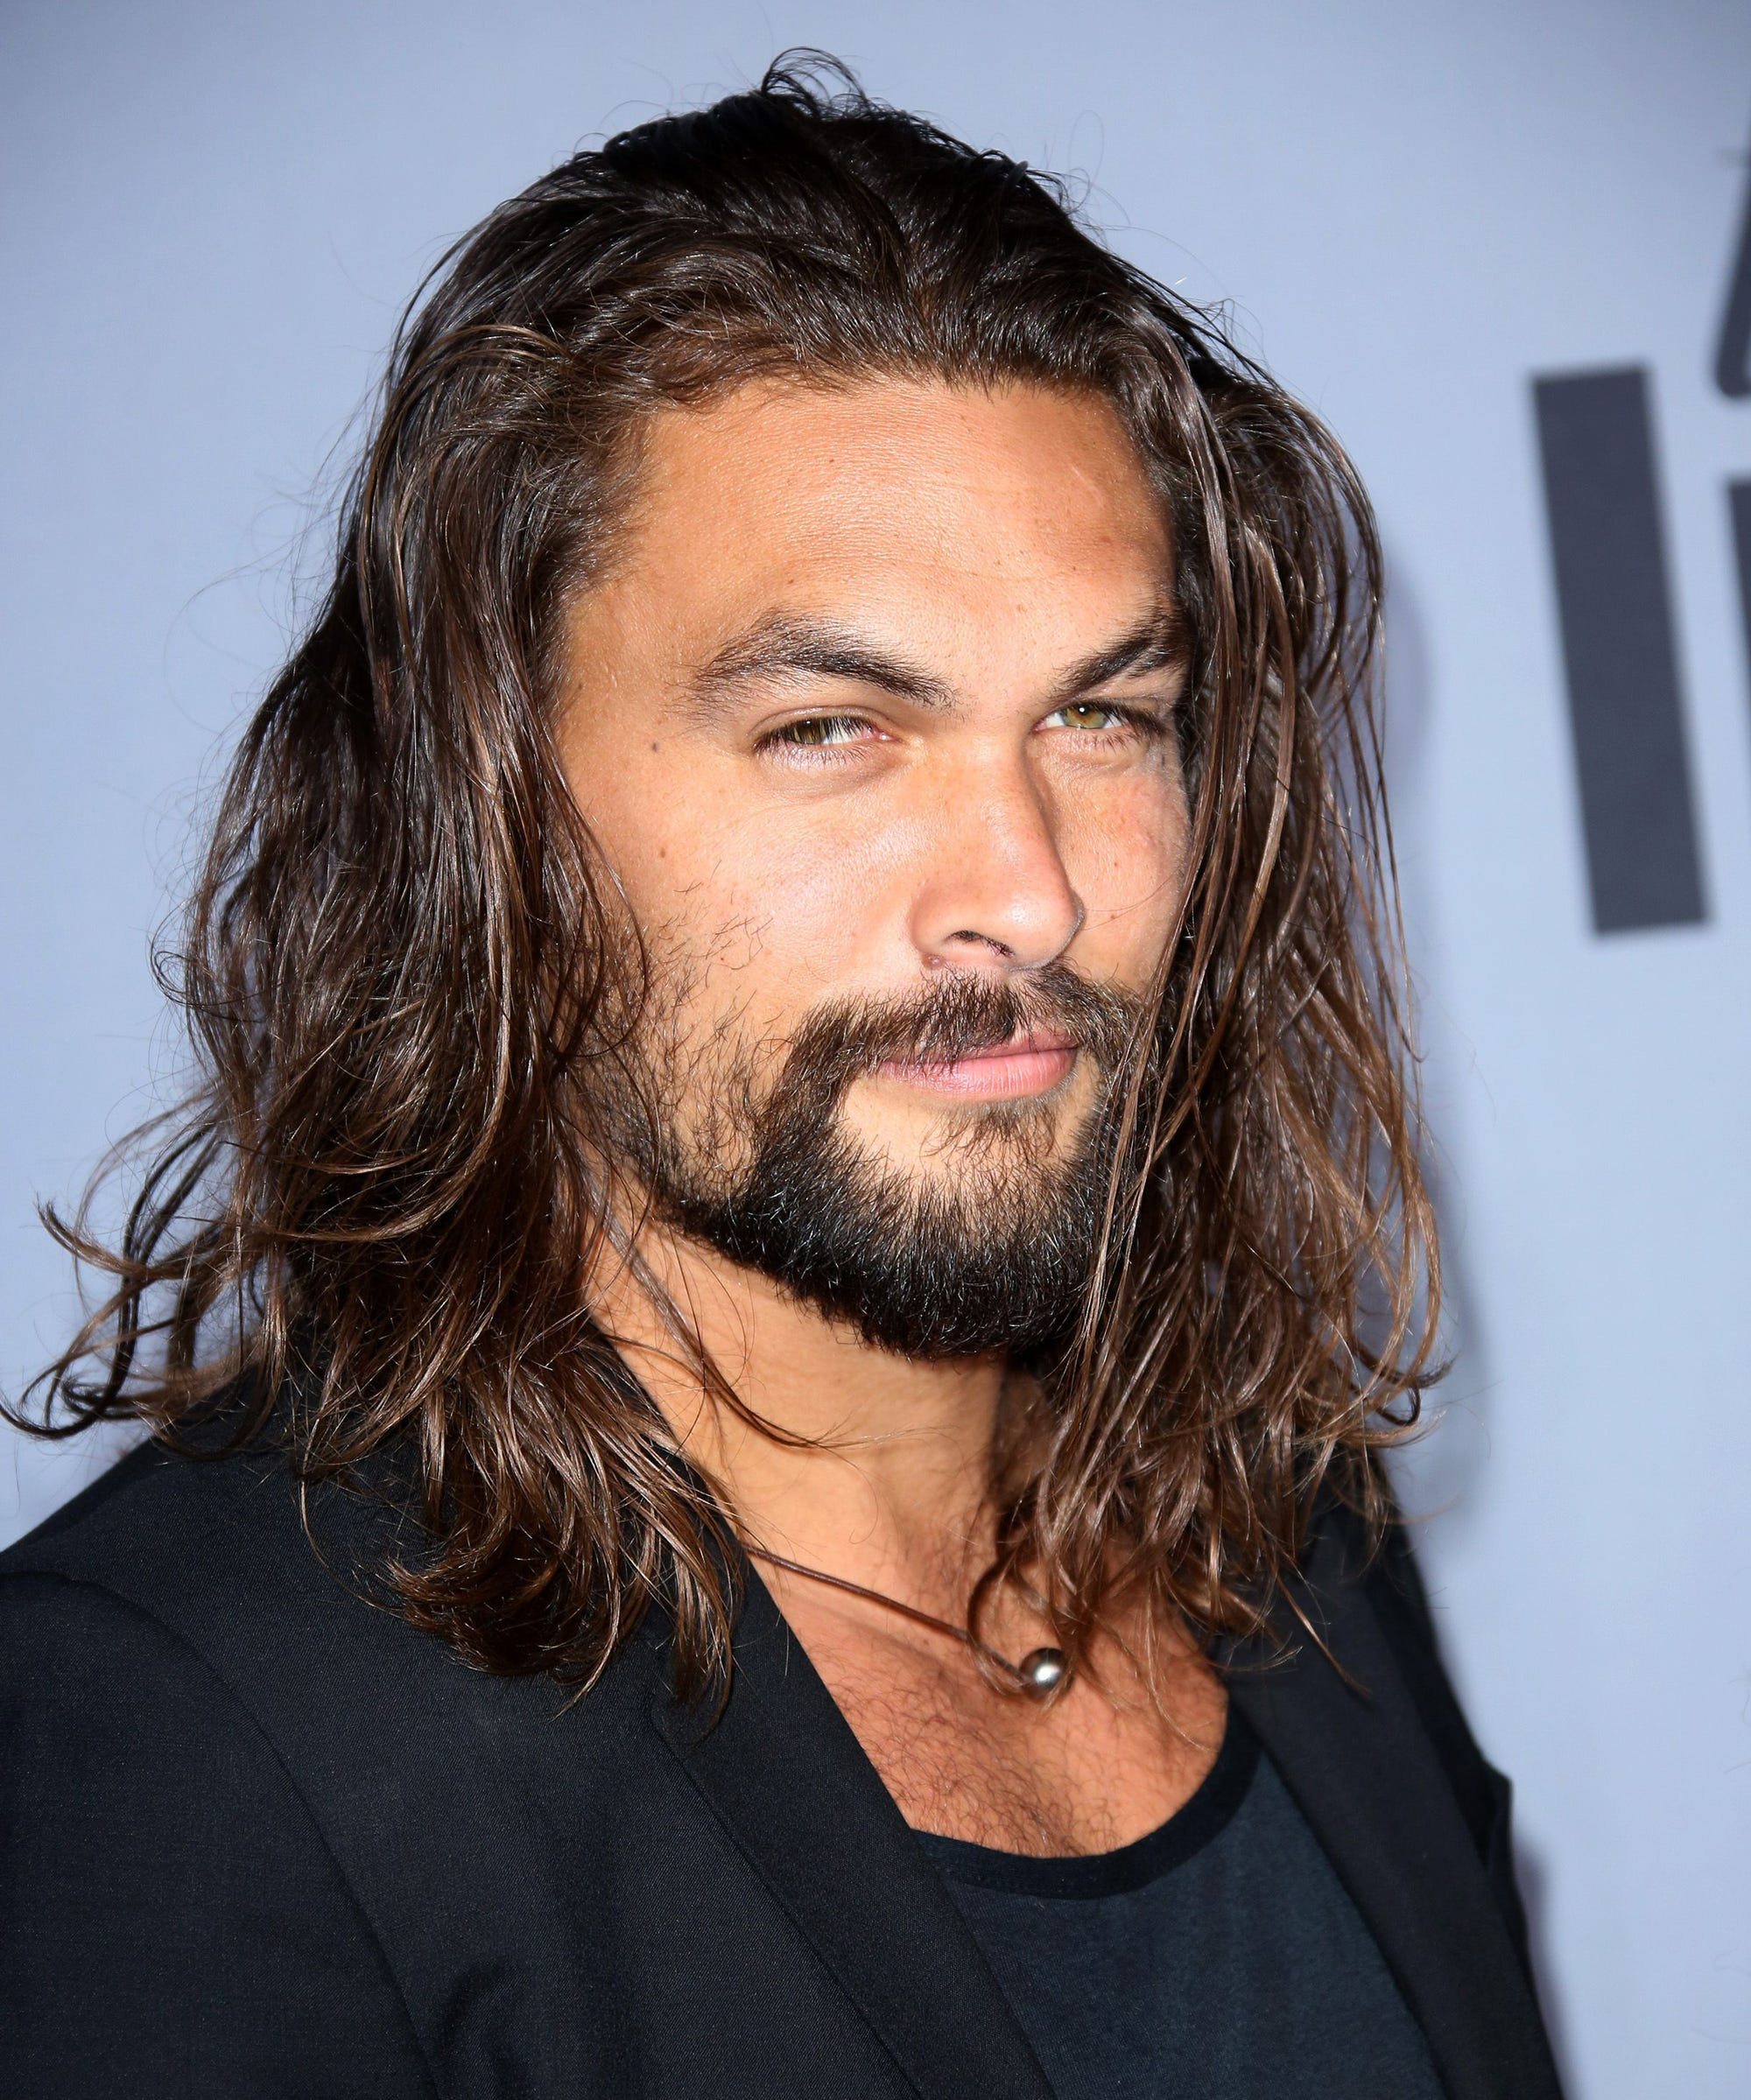 Jason Momoa Lifeguard: Jason Momoa Baywatch Role Pics Before Game Of Thrones